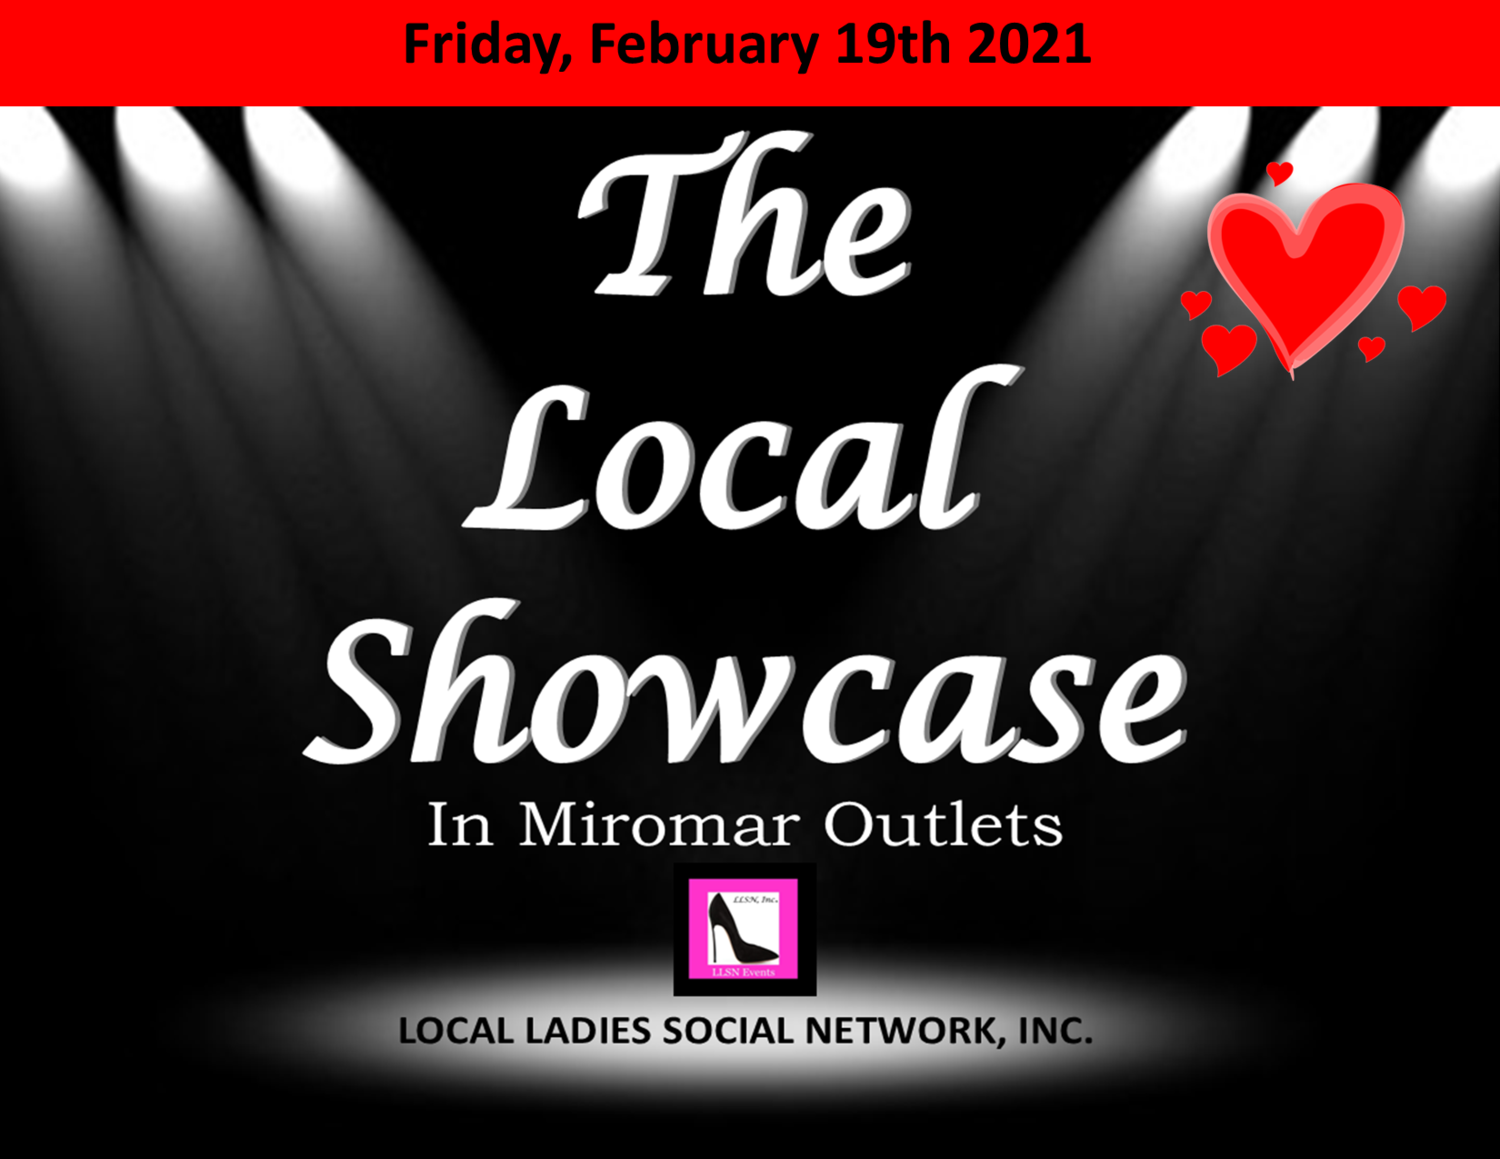 Friday, February 19th, 2021 11am-7pm